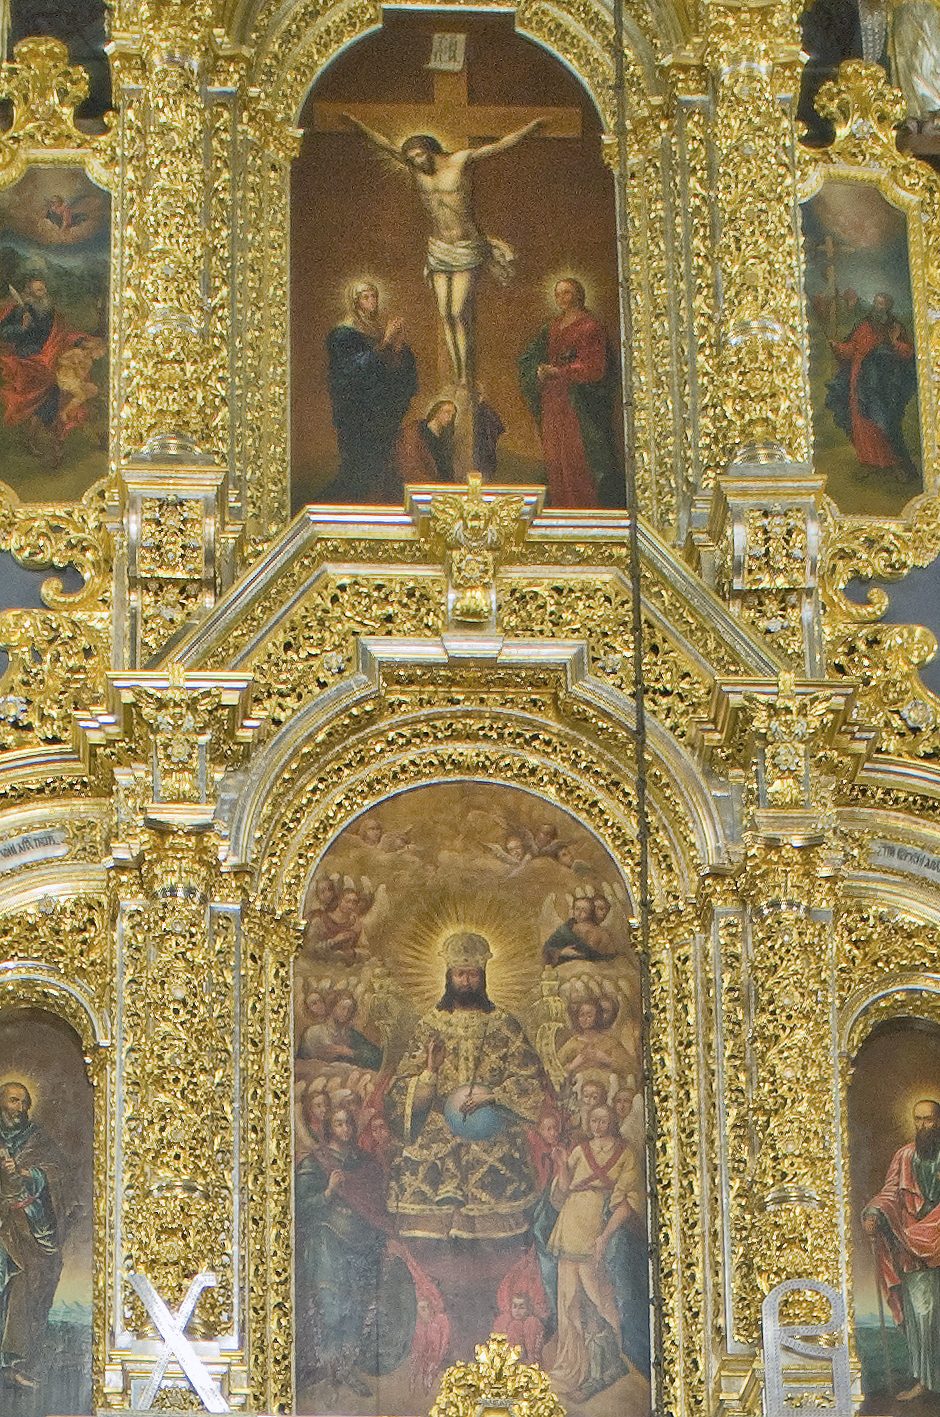 Dormition Cathedral, central icons of icon screen. July 1, 2014. / Photo: William Brumfield